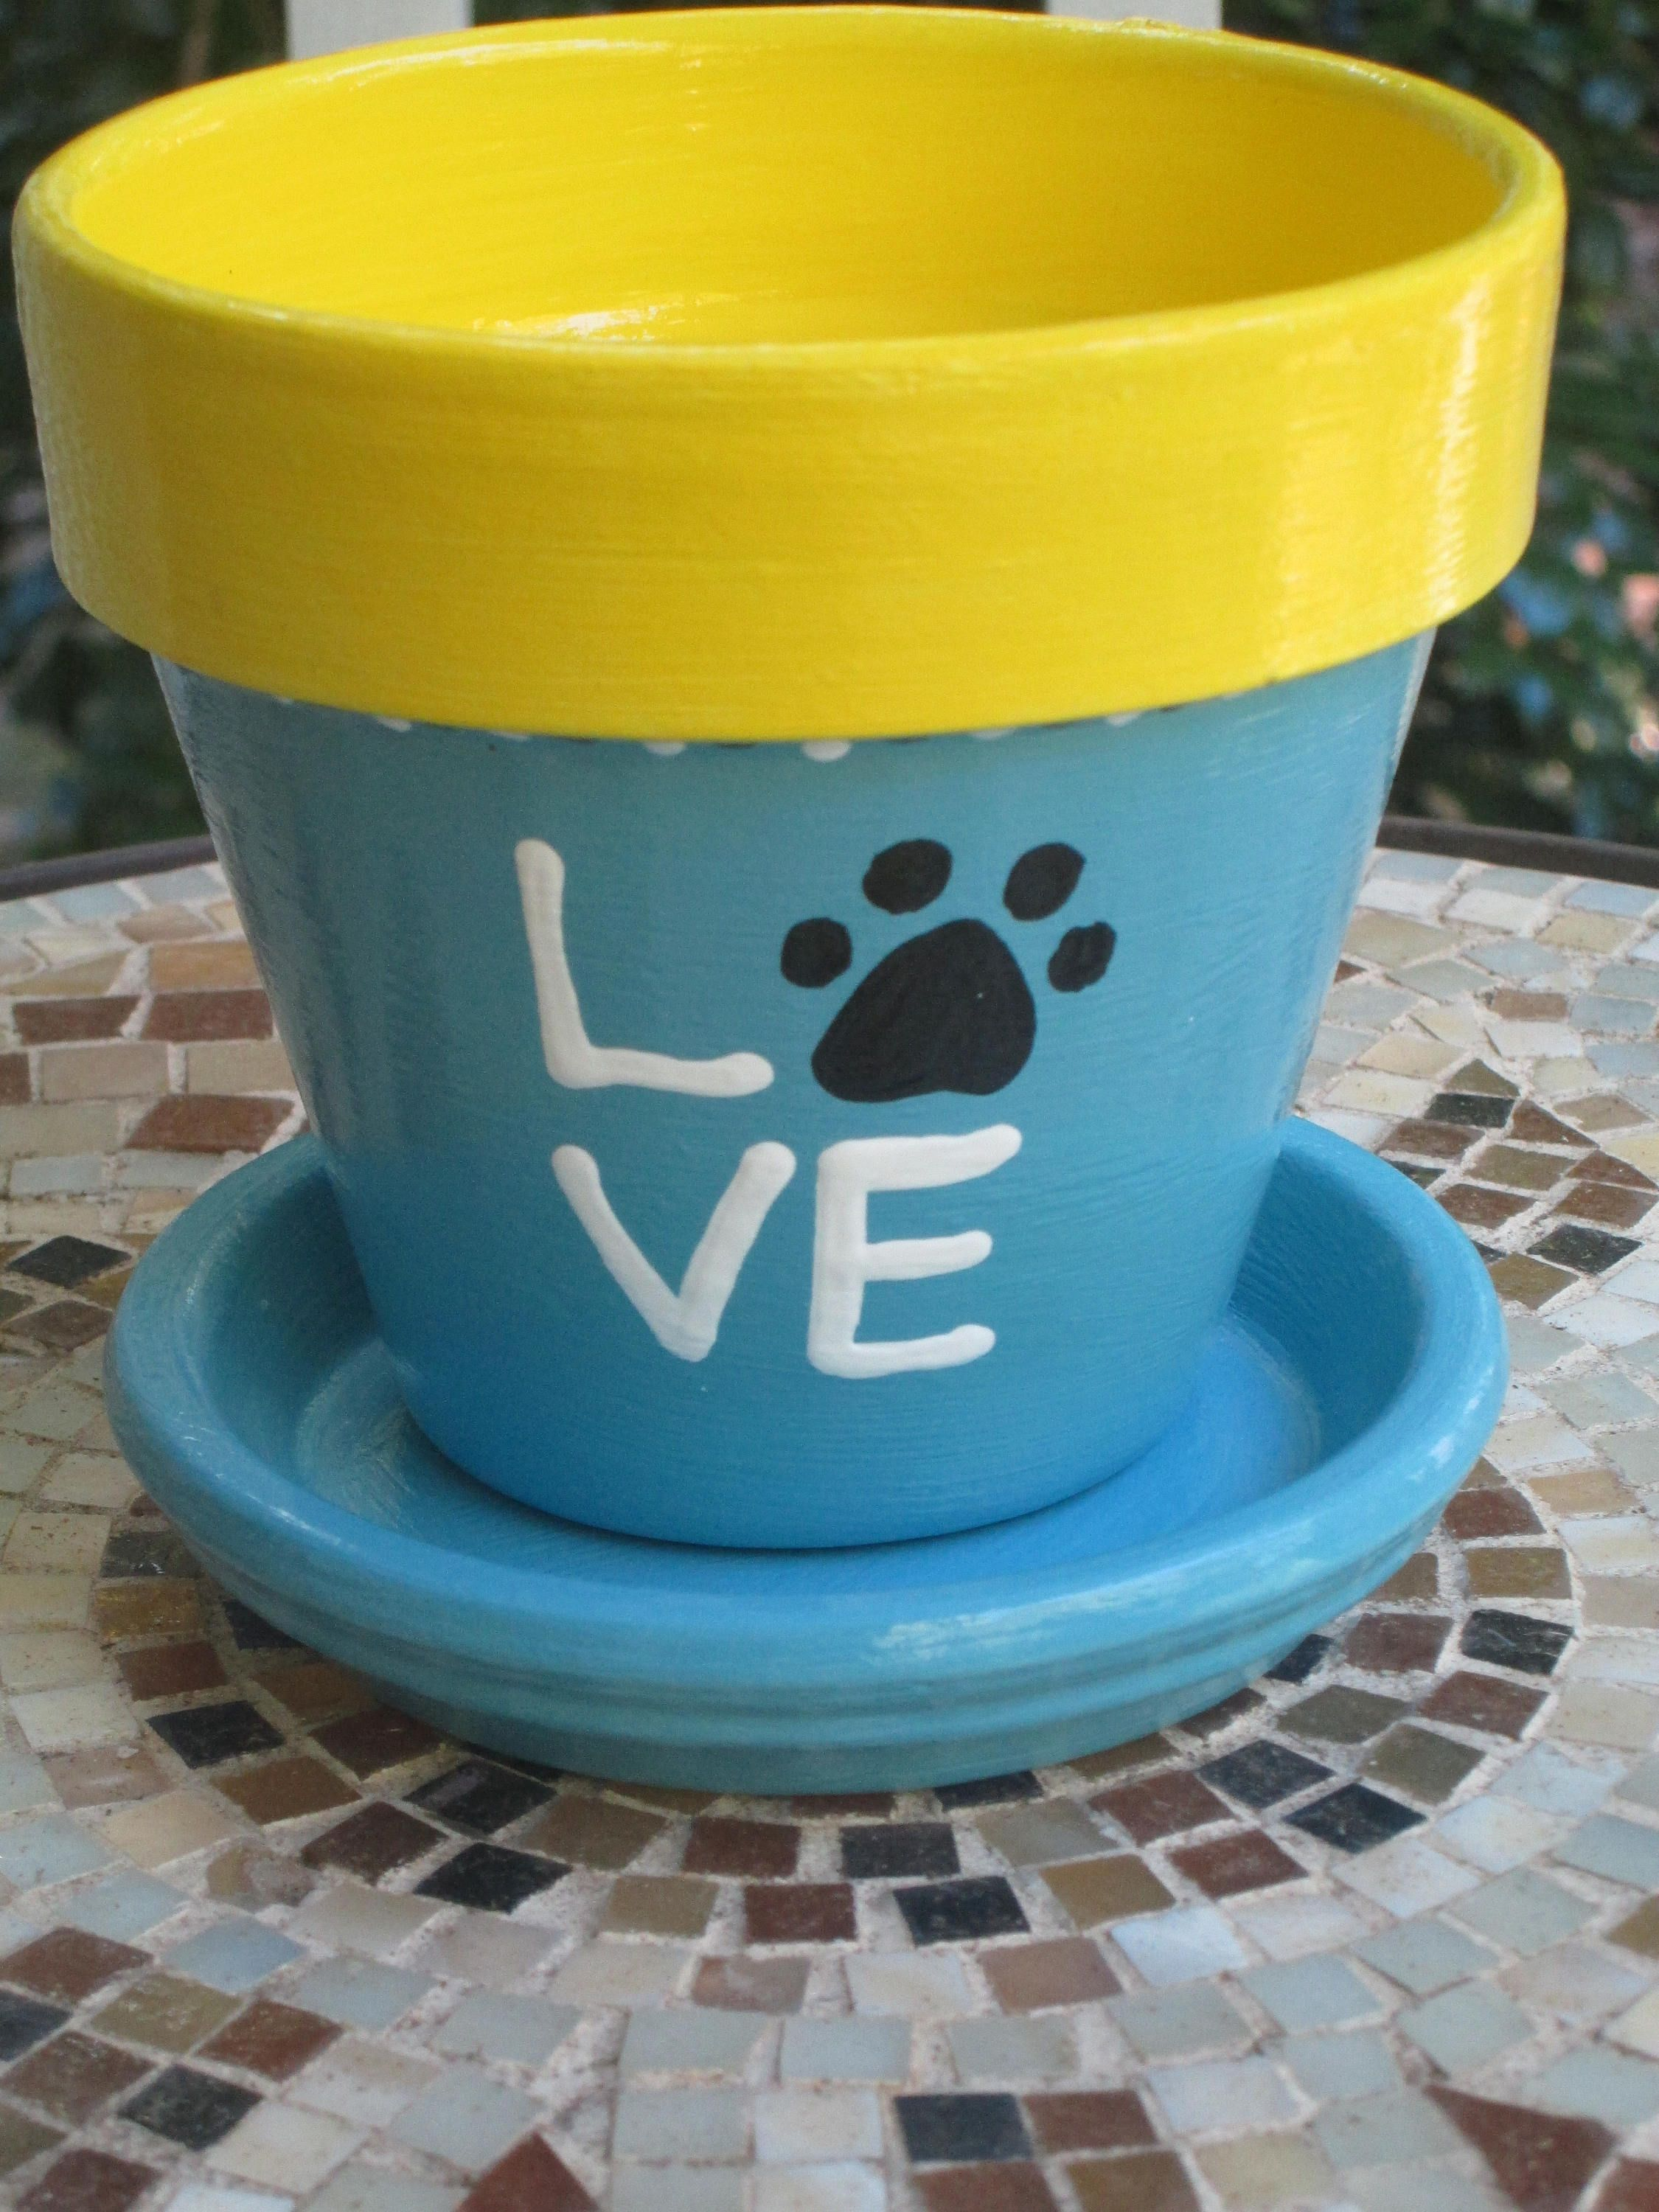 4 Inch Hand Painted Clay Pot And Saucer Love My Pet Outdoor Flower Pot Outdoor Planter Pet Memorial By Povyart On Etsy Painted Clay Pots Clay Pots Flower Pots